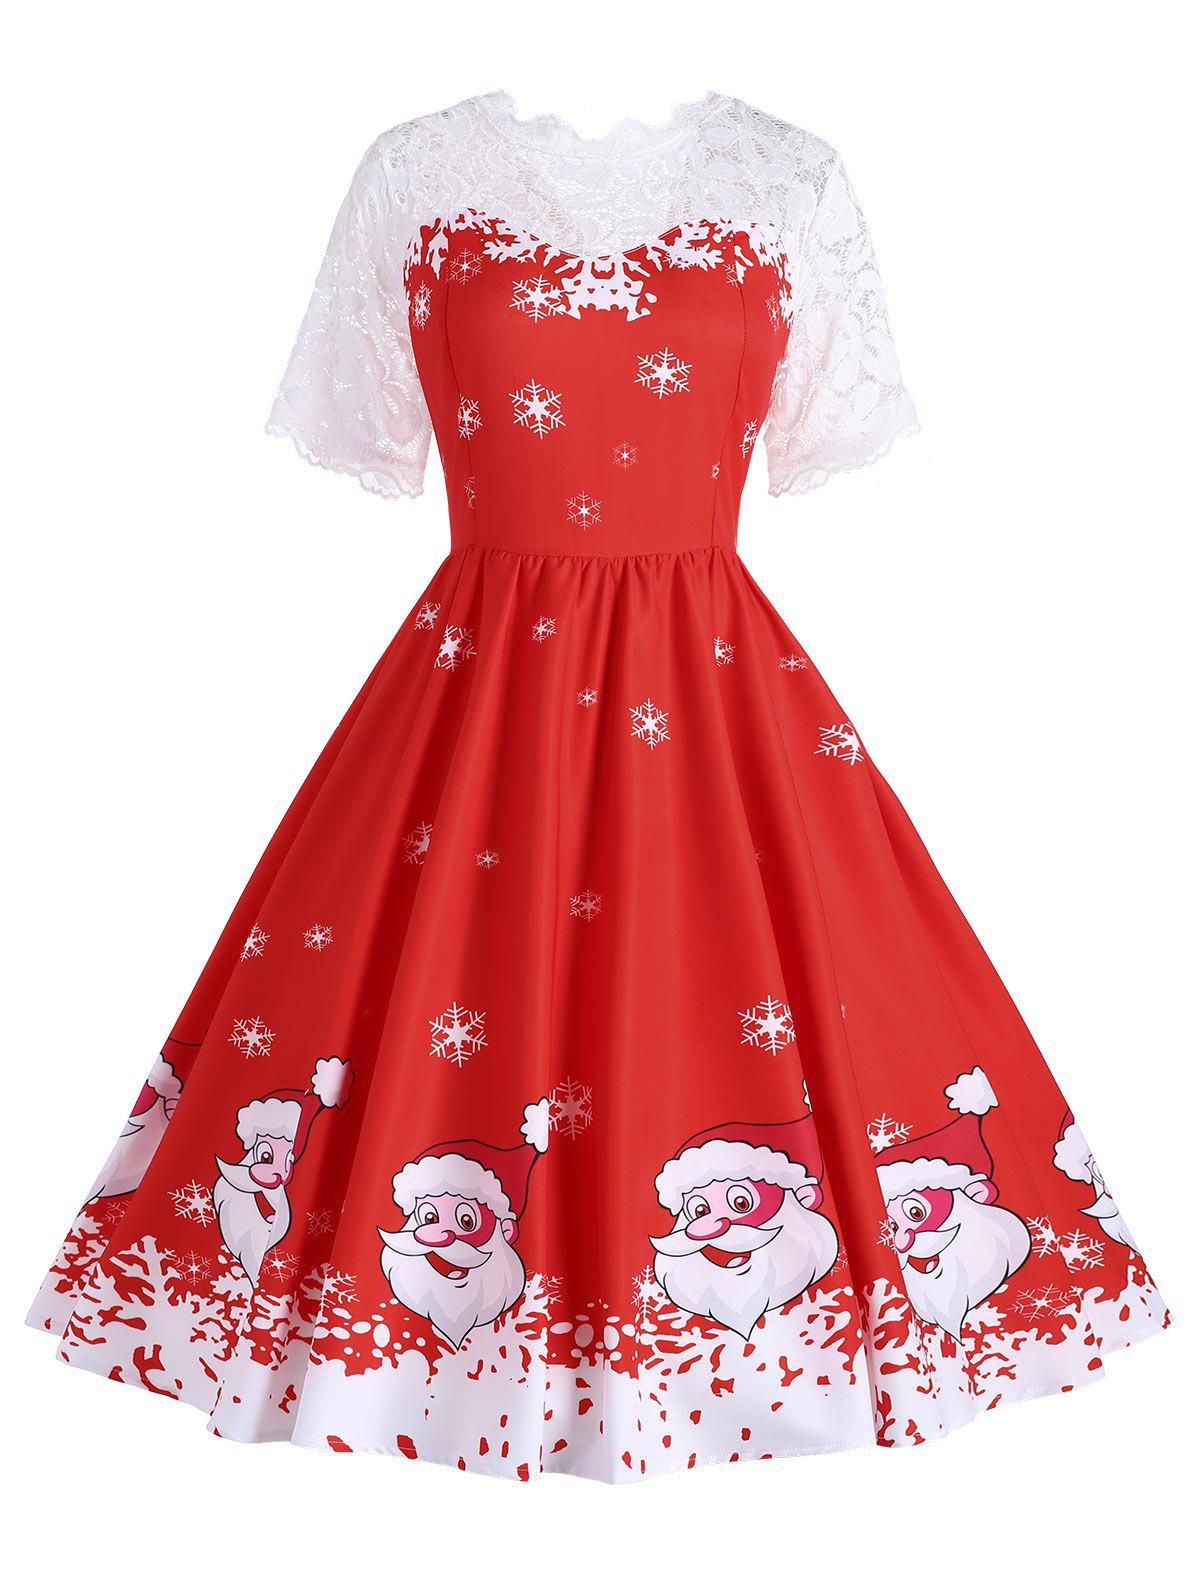 Trendy Plus Size Snowflake Santa Claus Christmas Dress